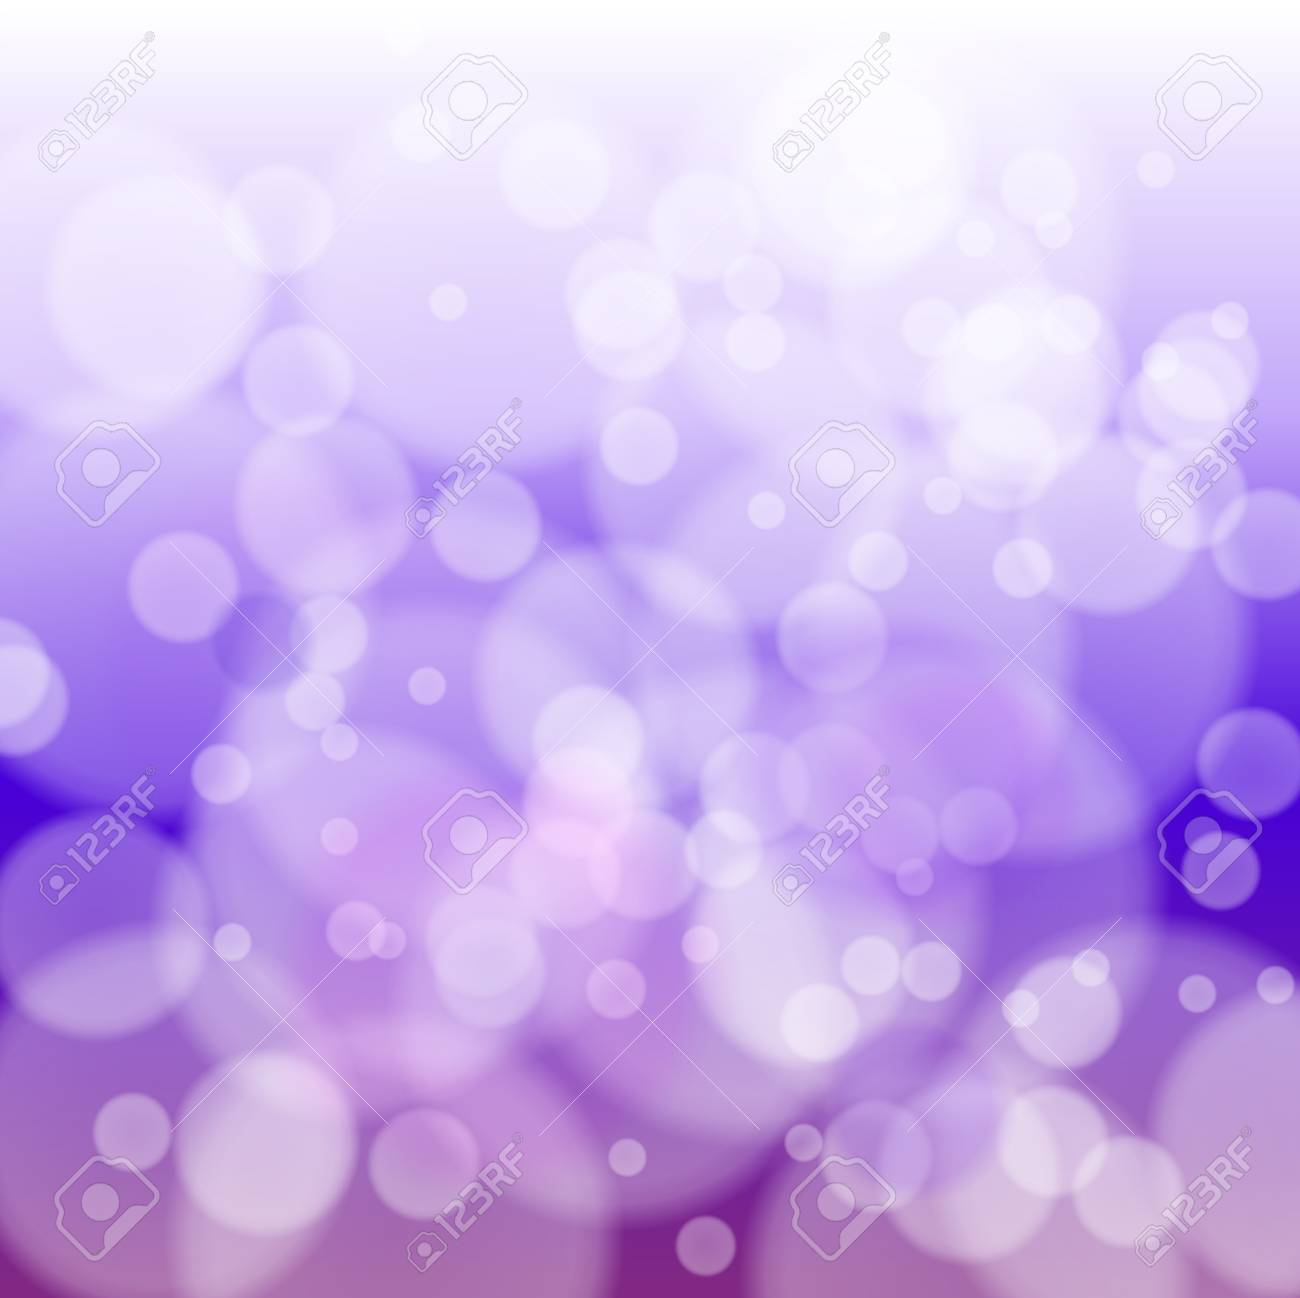 Violet bokeh abstract light background with stars.  illustration Stock Photo - 7305054